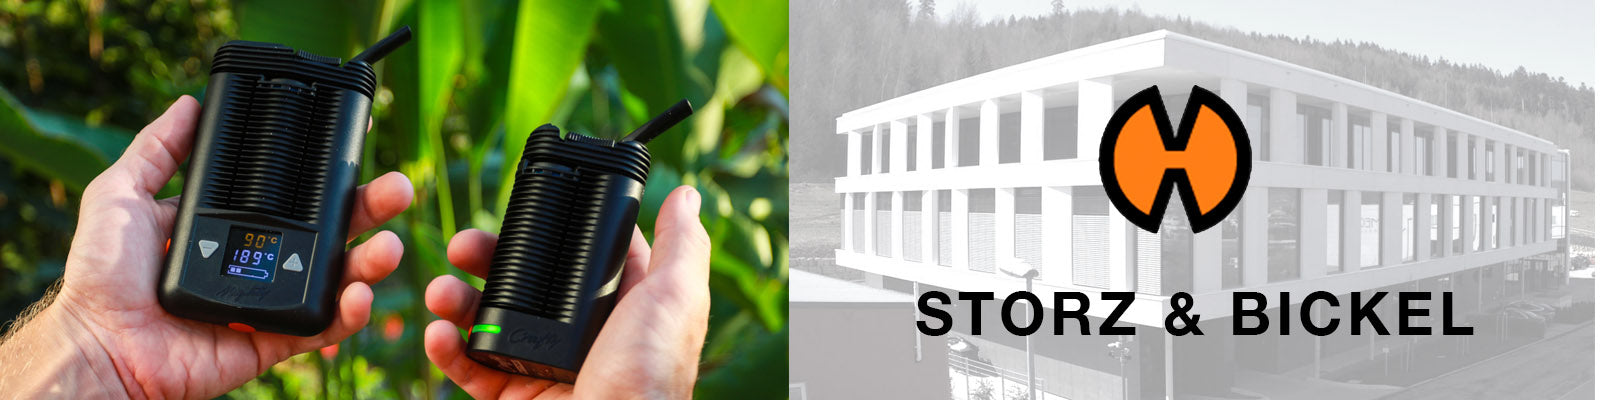 Storz & Bickel Vaporizers Canada Authorized Sellers Free Shipping